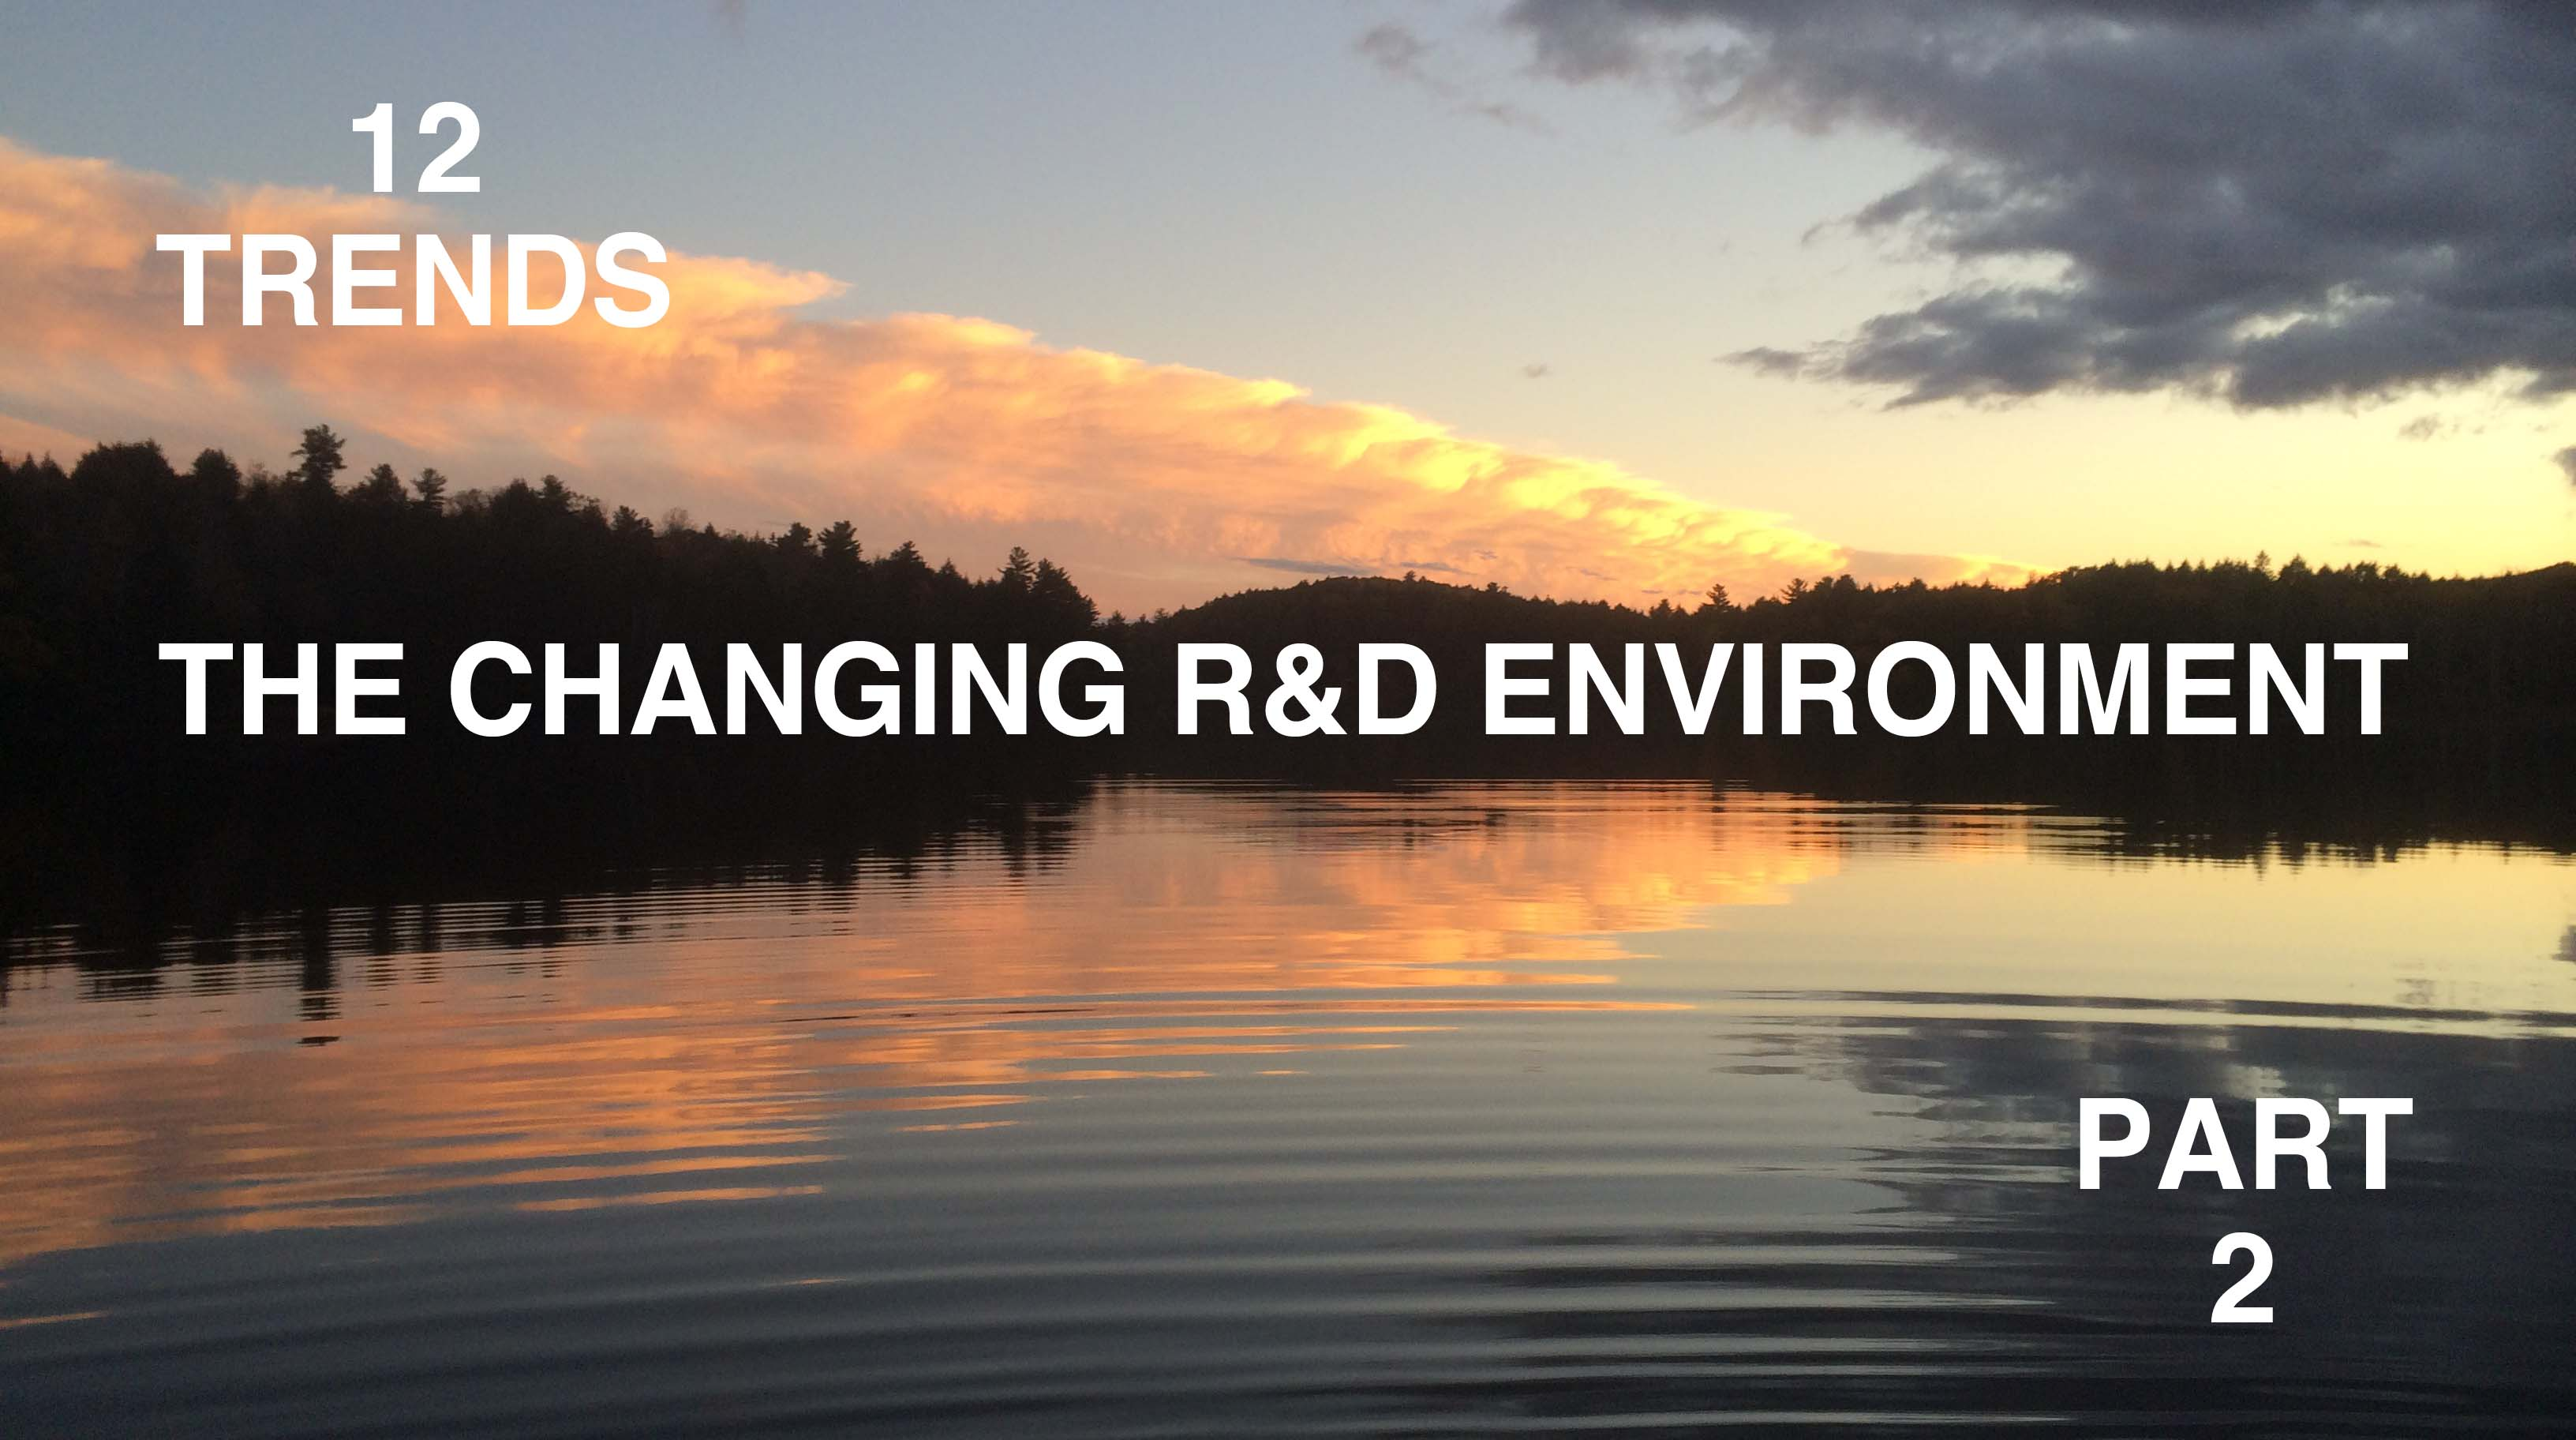 Top 12 Trends in the Science of Managing R&D and Product Development-Part 2